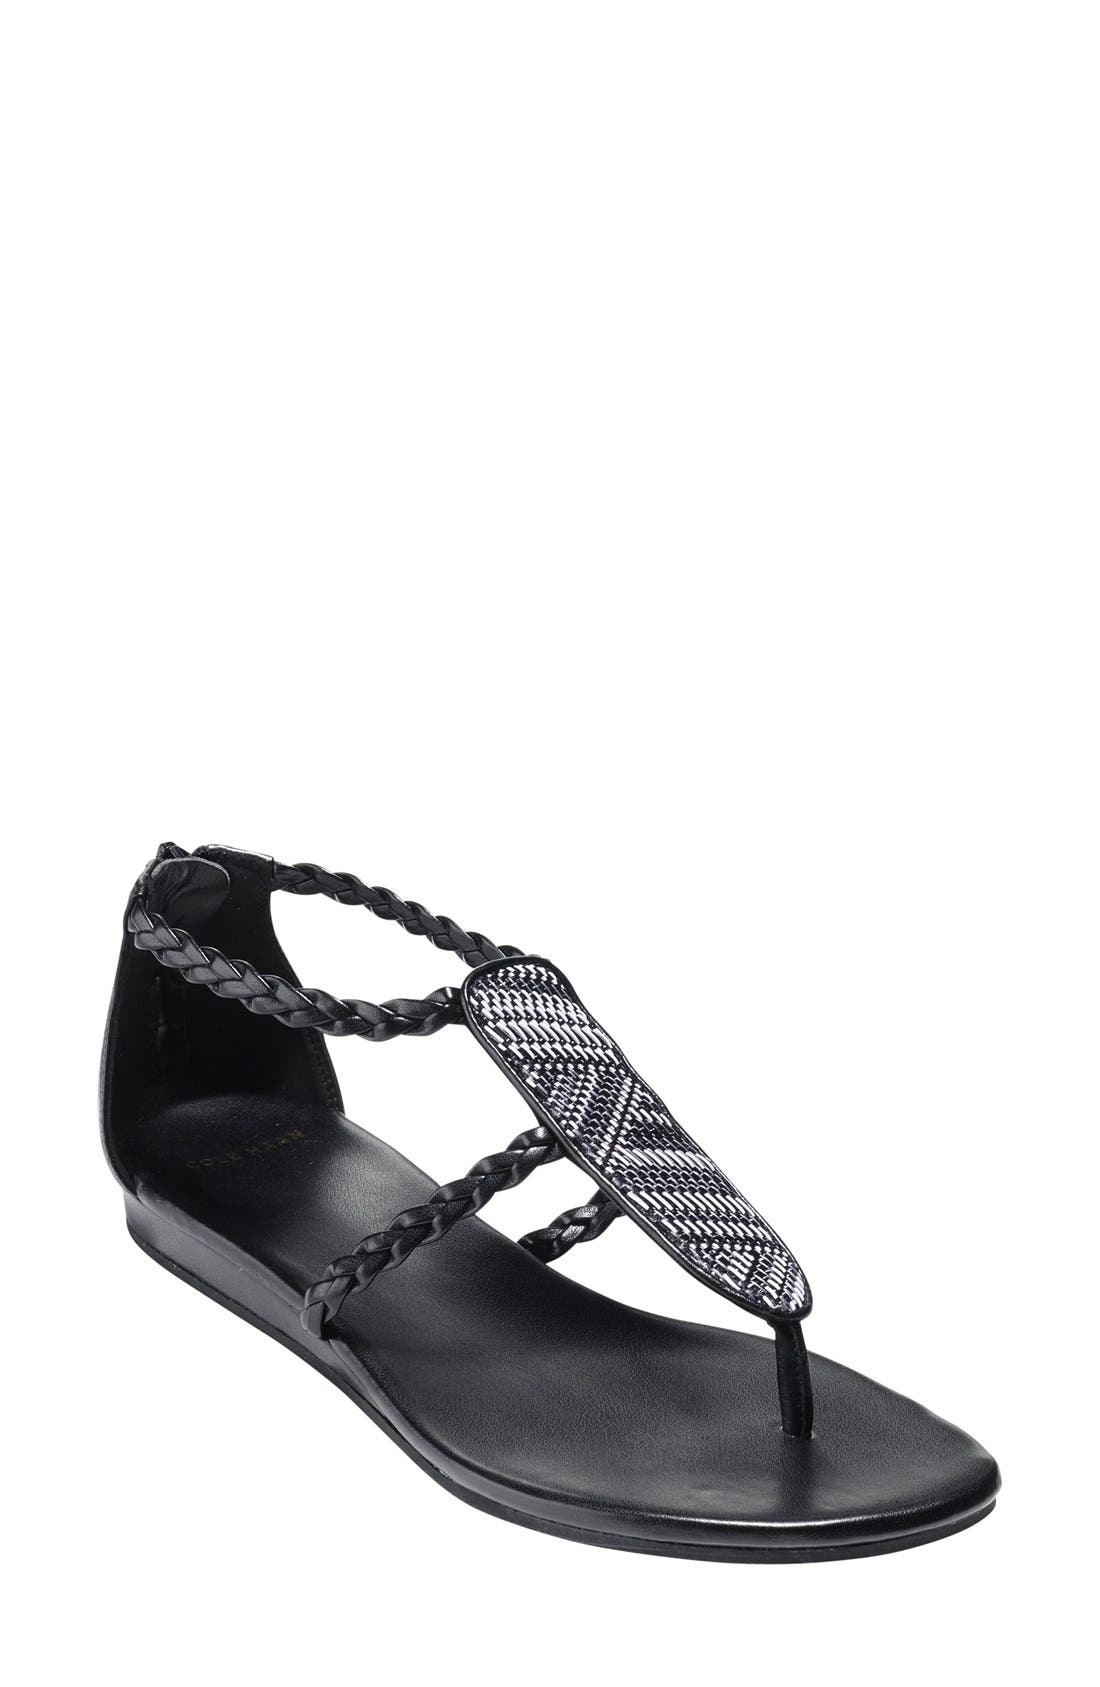 'Abbe' Sandal,                             Main thumbnail 1, color,                             Black/ White Leather